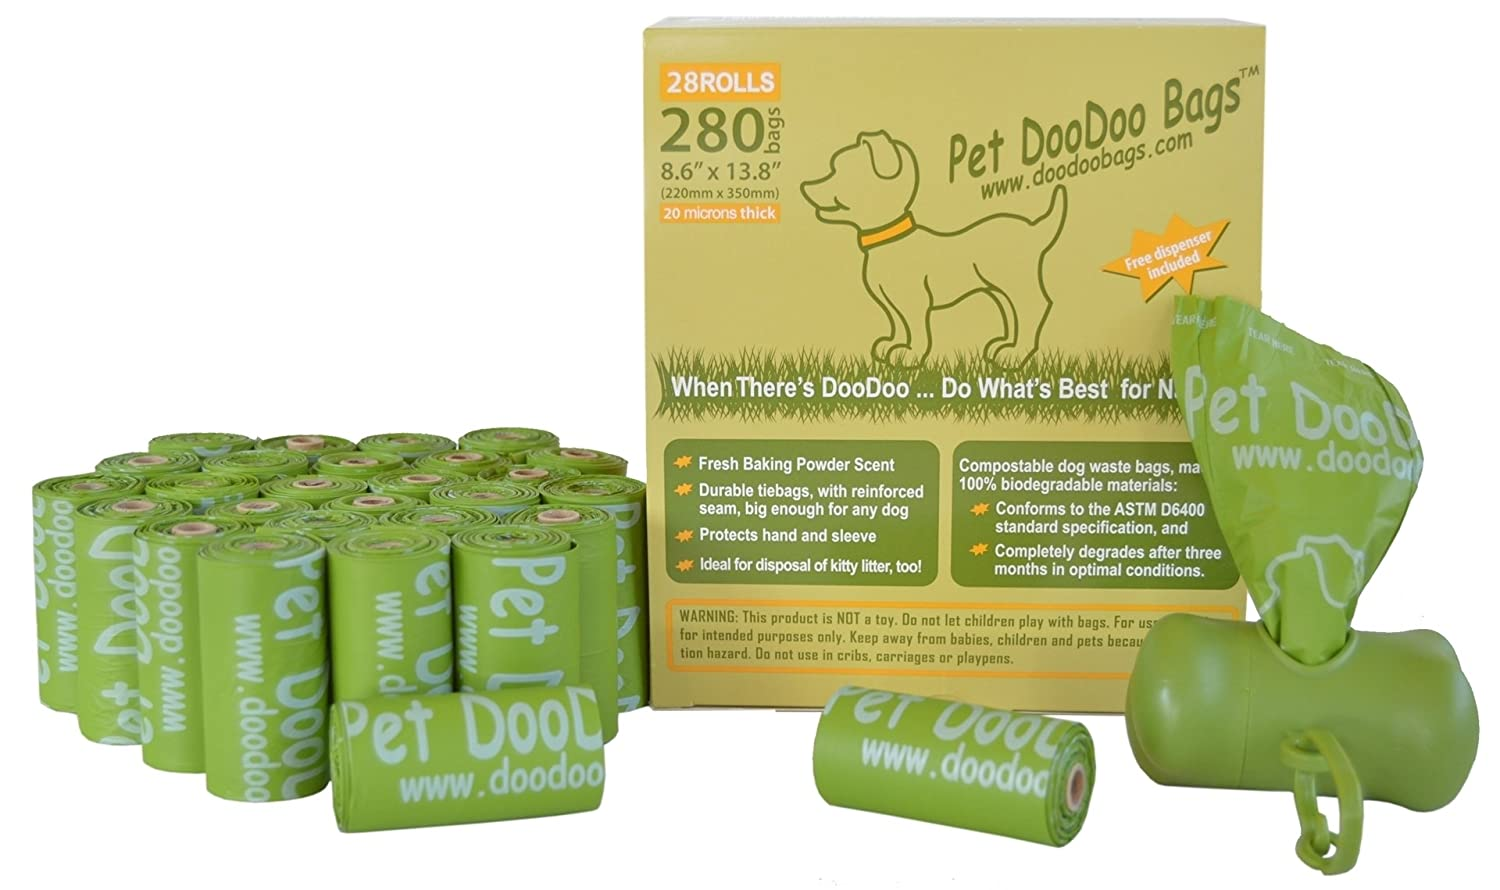 28 Rolls (280 Bags) Compostable Pet DooDoo Bags, ASTM D6400 / EN 13432 Approved, Free Dispenser Included